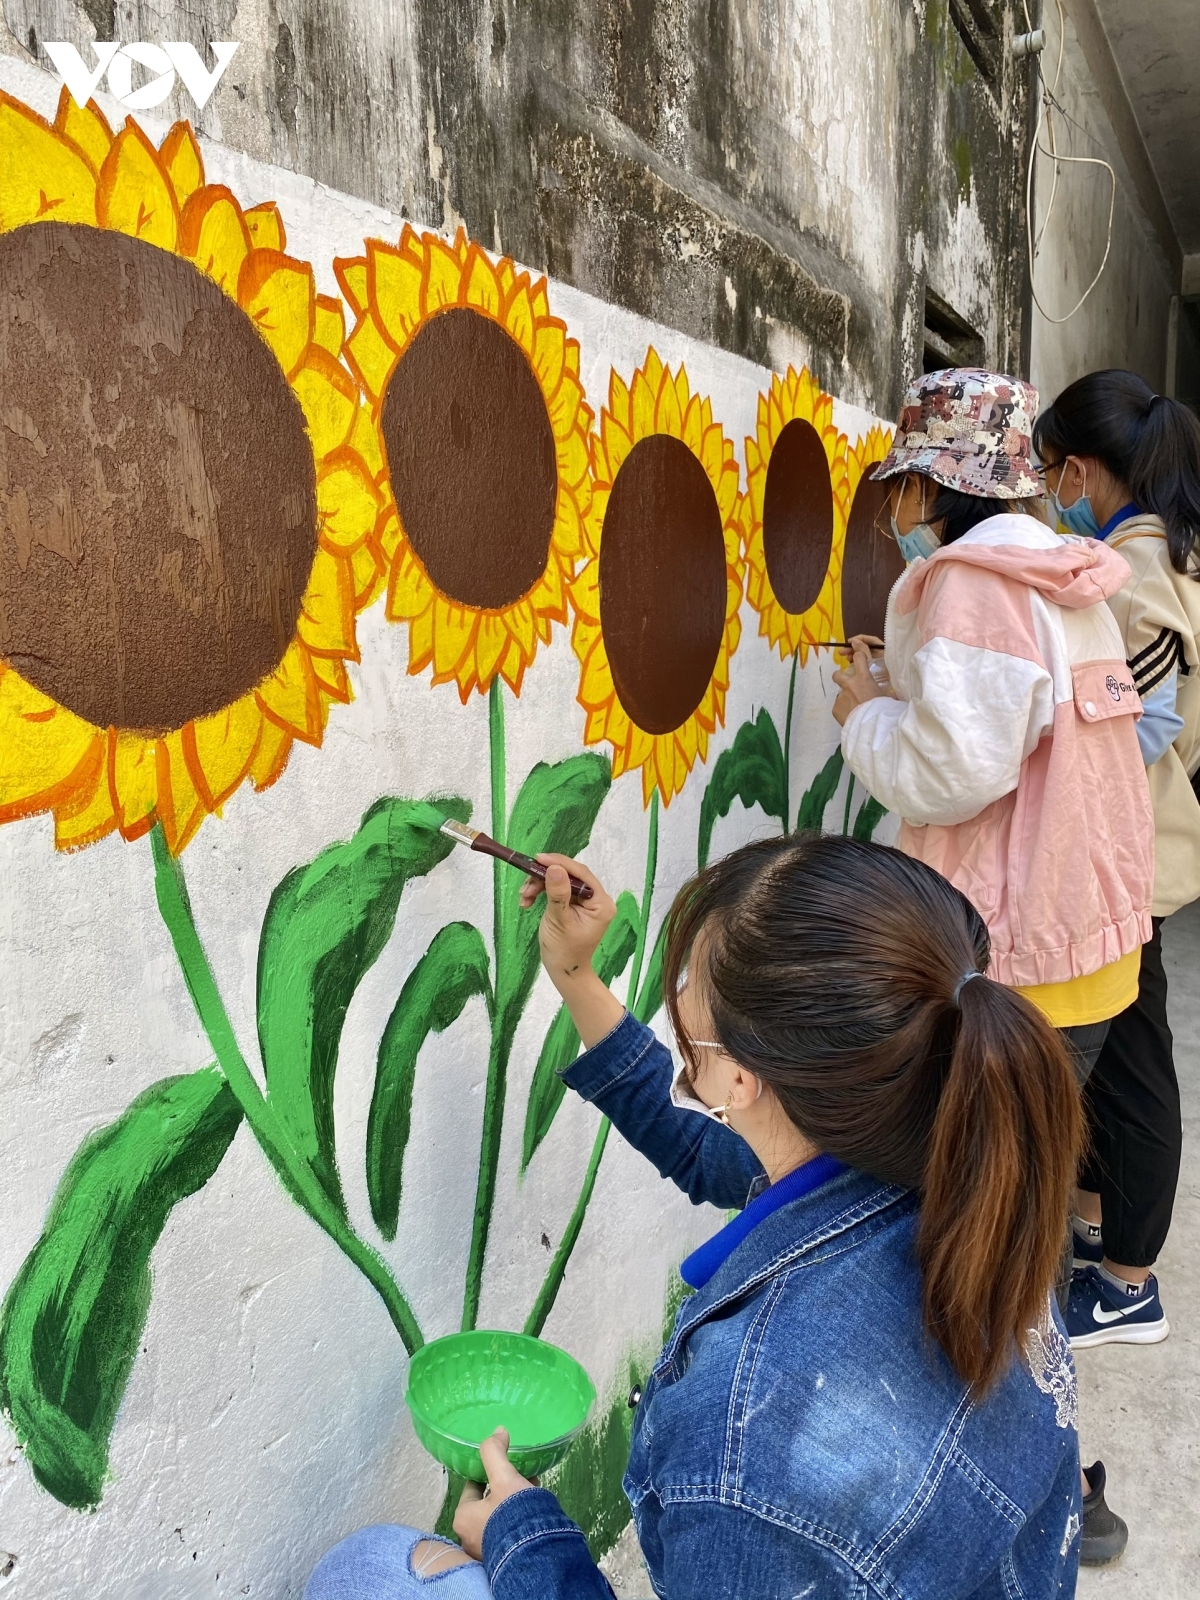 The Youth Union of Can Tho draws several mural paintings as part of efforts to make local landscape more attractive and beautiful.